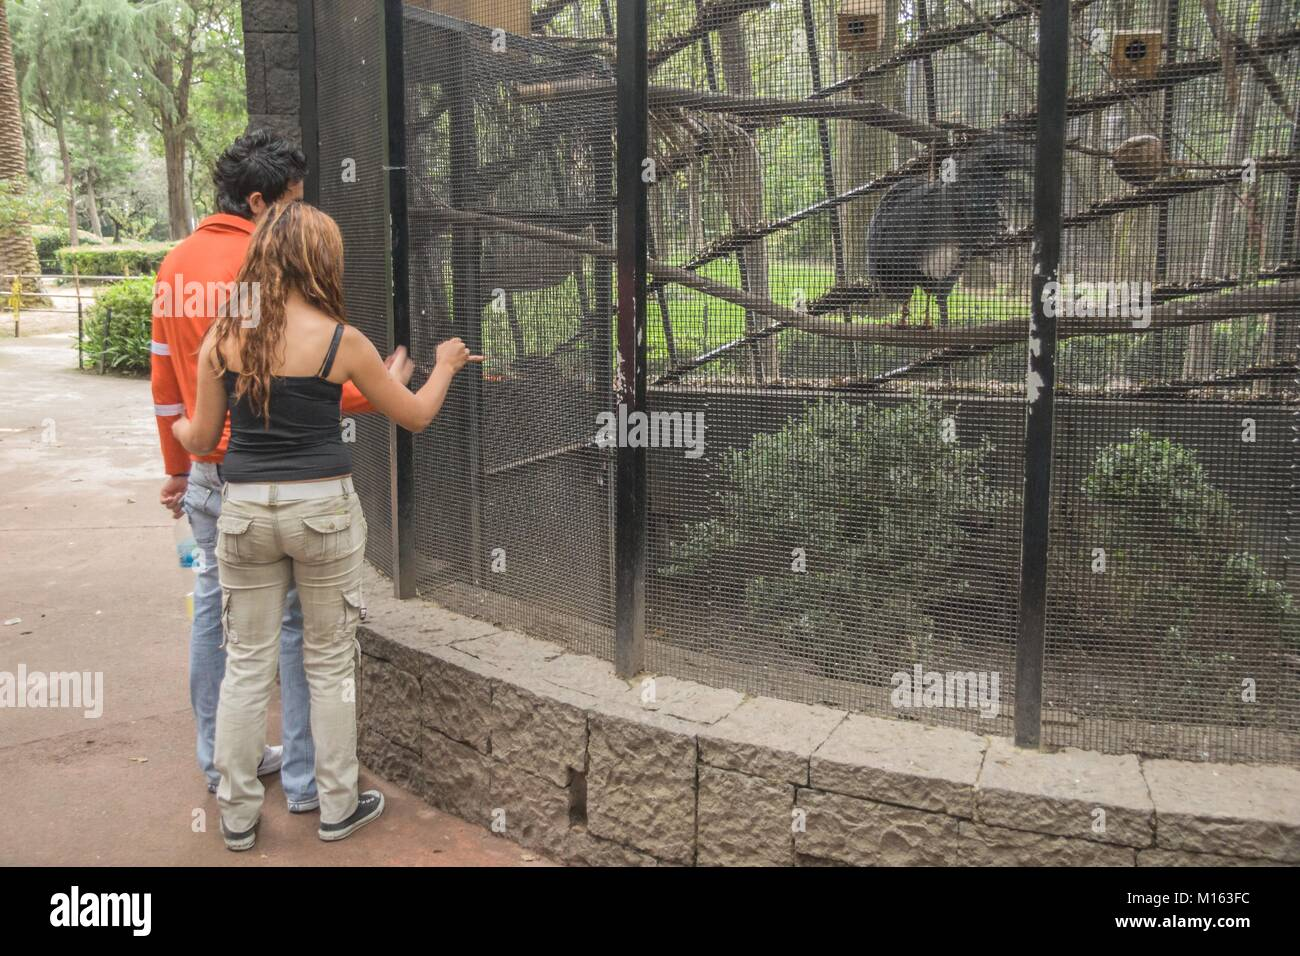 An couple of young lovers enjoying a trip to a zoo in Mexico City. - Stock Image